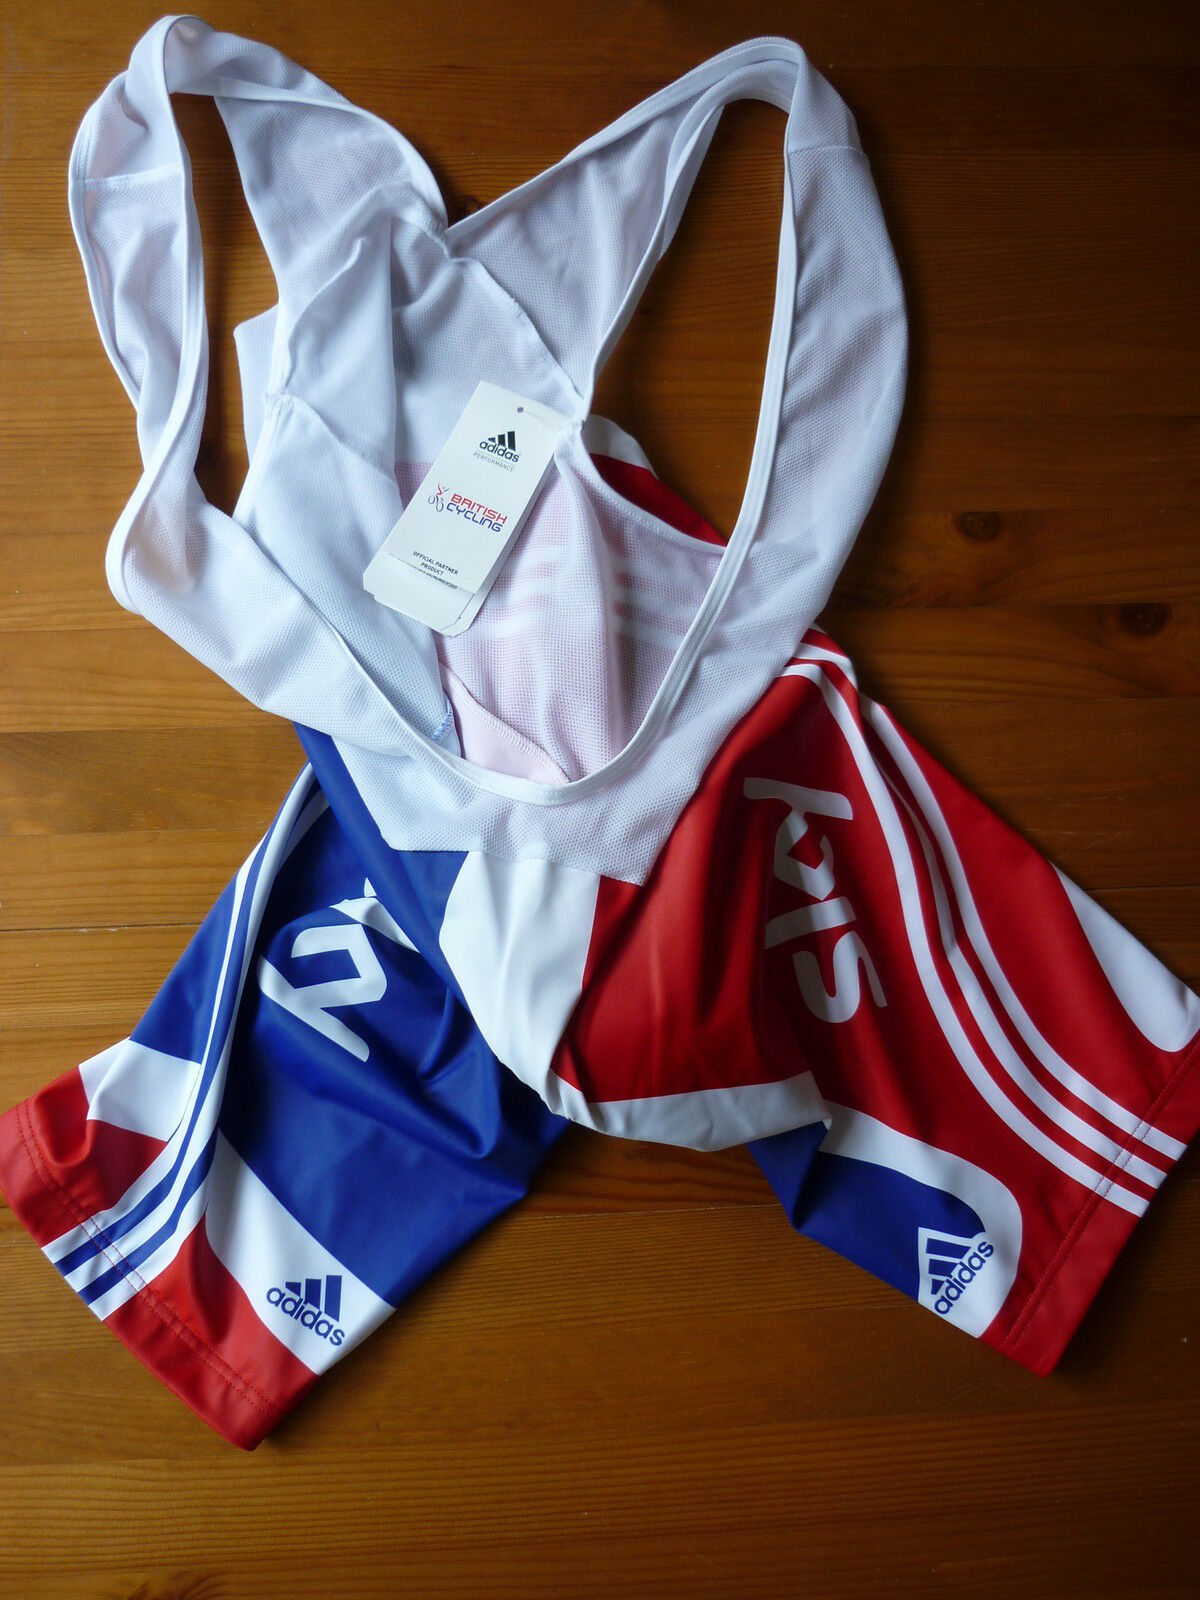 GREAT BRITAIN CYCLING   SKY BIB SHORTS MEDIUM (size 3) BRAND NEW WITH TAGS  gorgeous